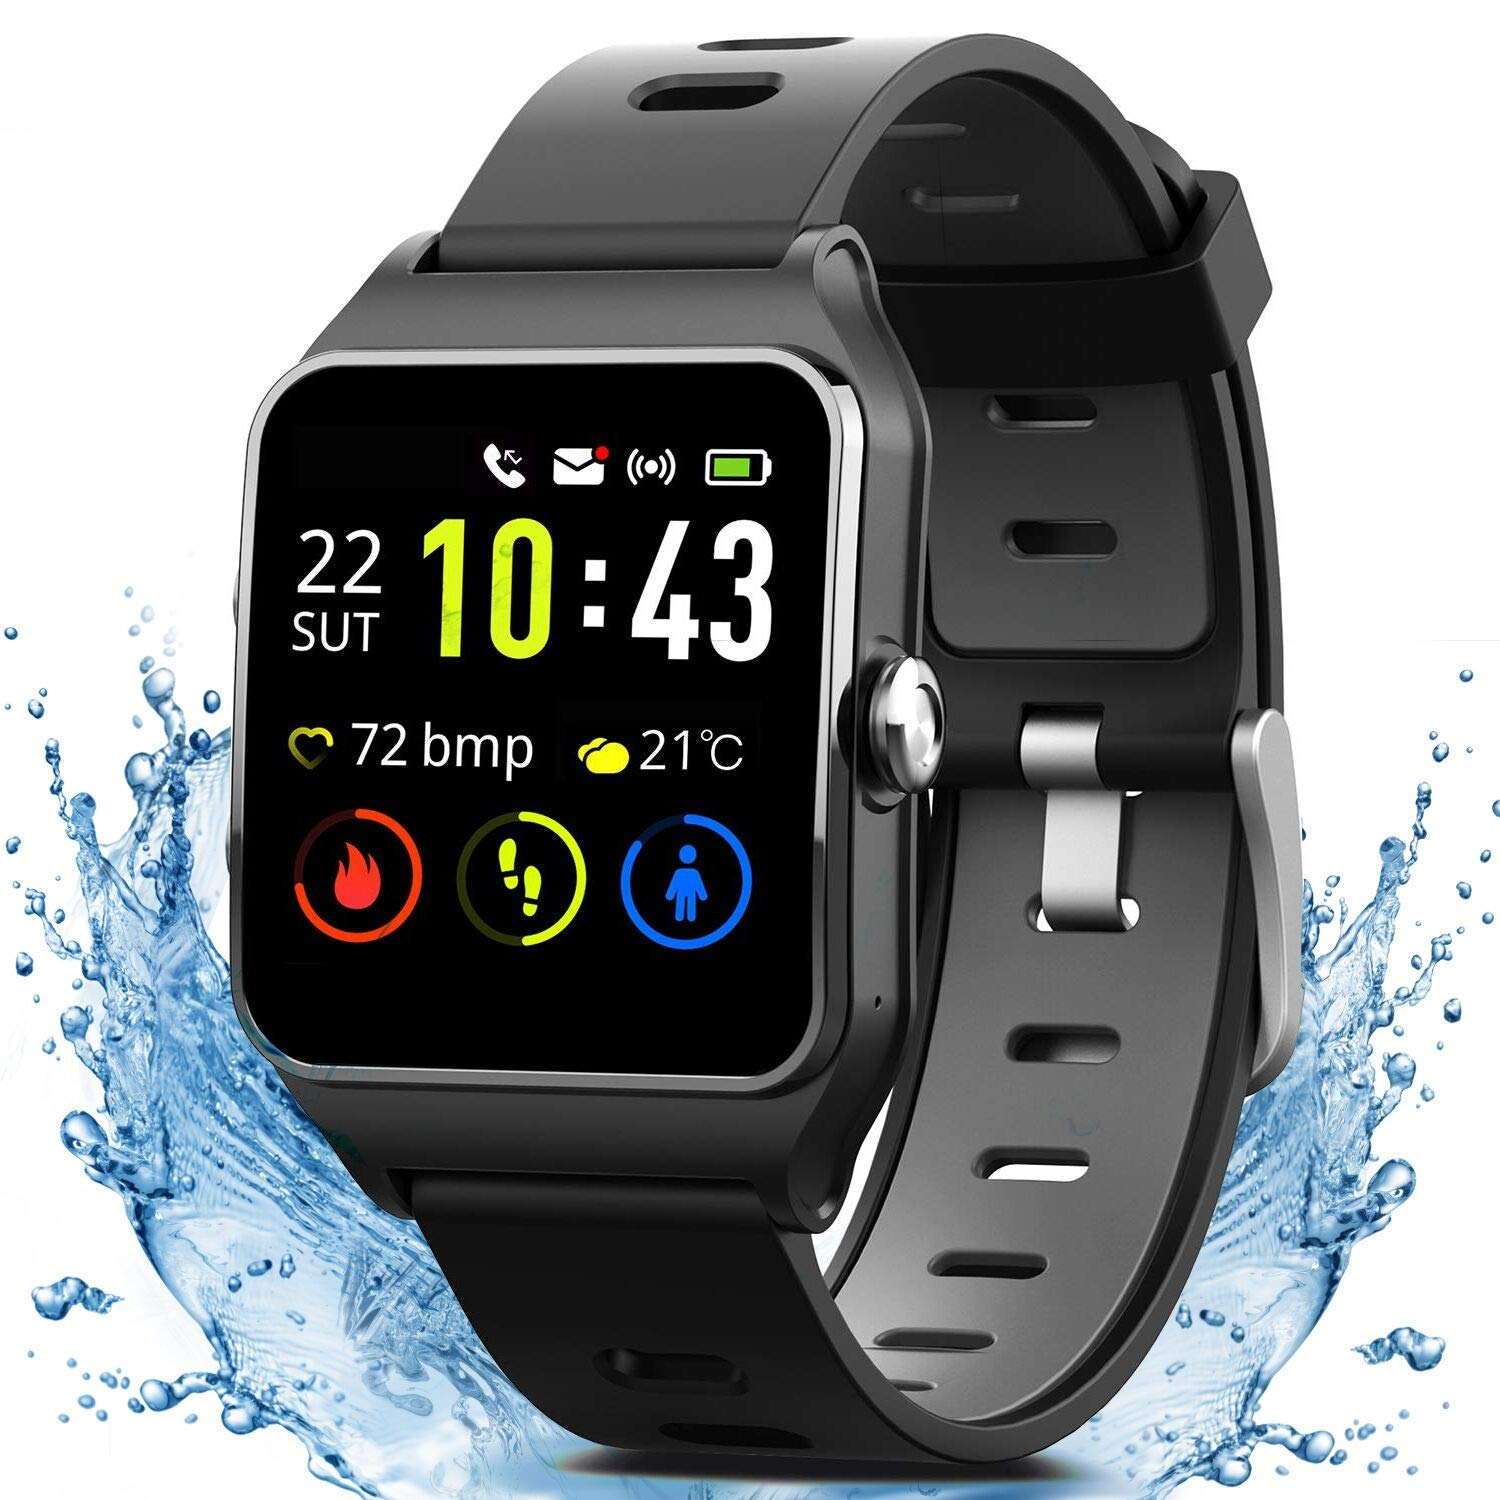 MorePro GPS Smart Watch with 17 Sports Mode Cycling Running Watches IP68 Swimming Waterproof Fitness Tracker, Heart Rate Monitor Smartwatch for Women Men Compatible with iPhone & Android by MorePro